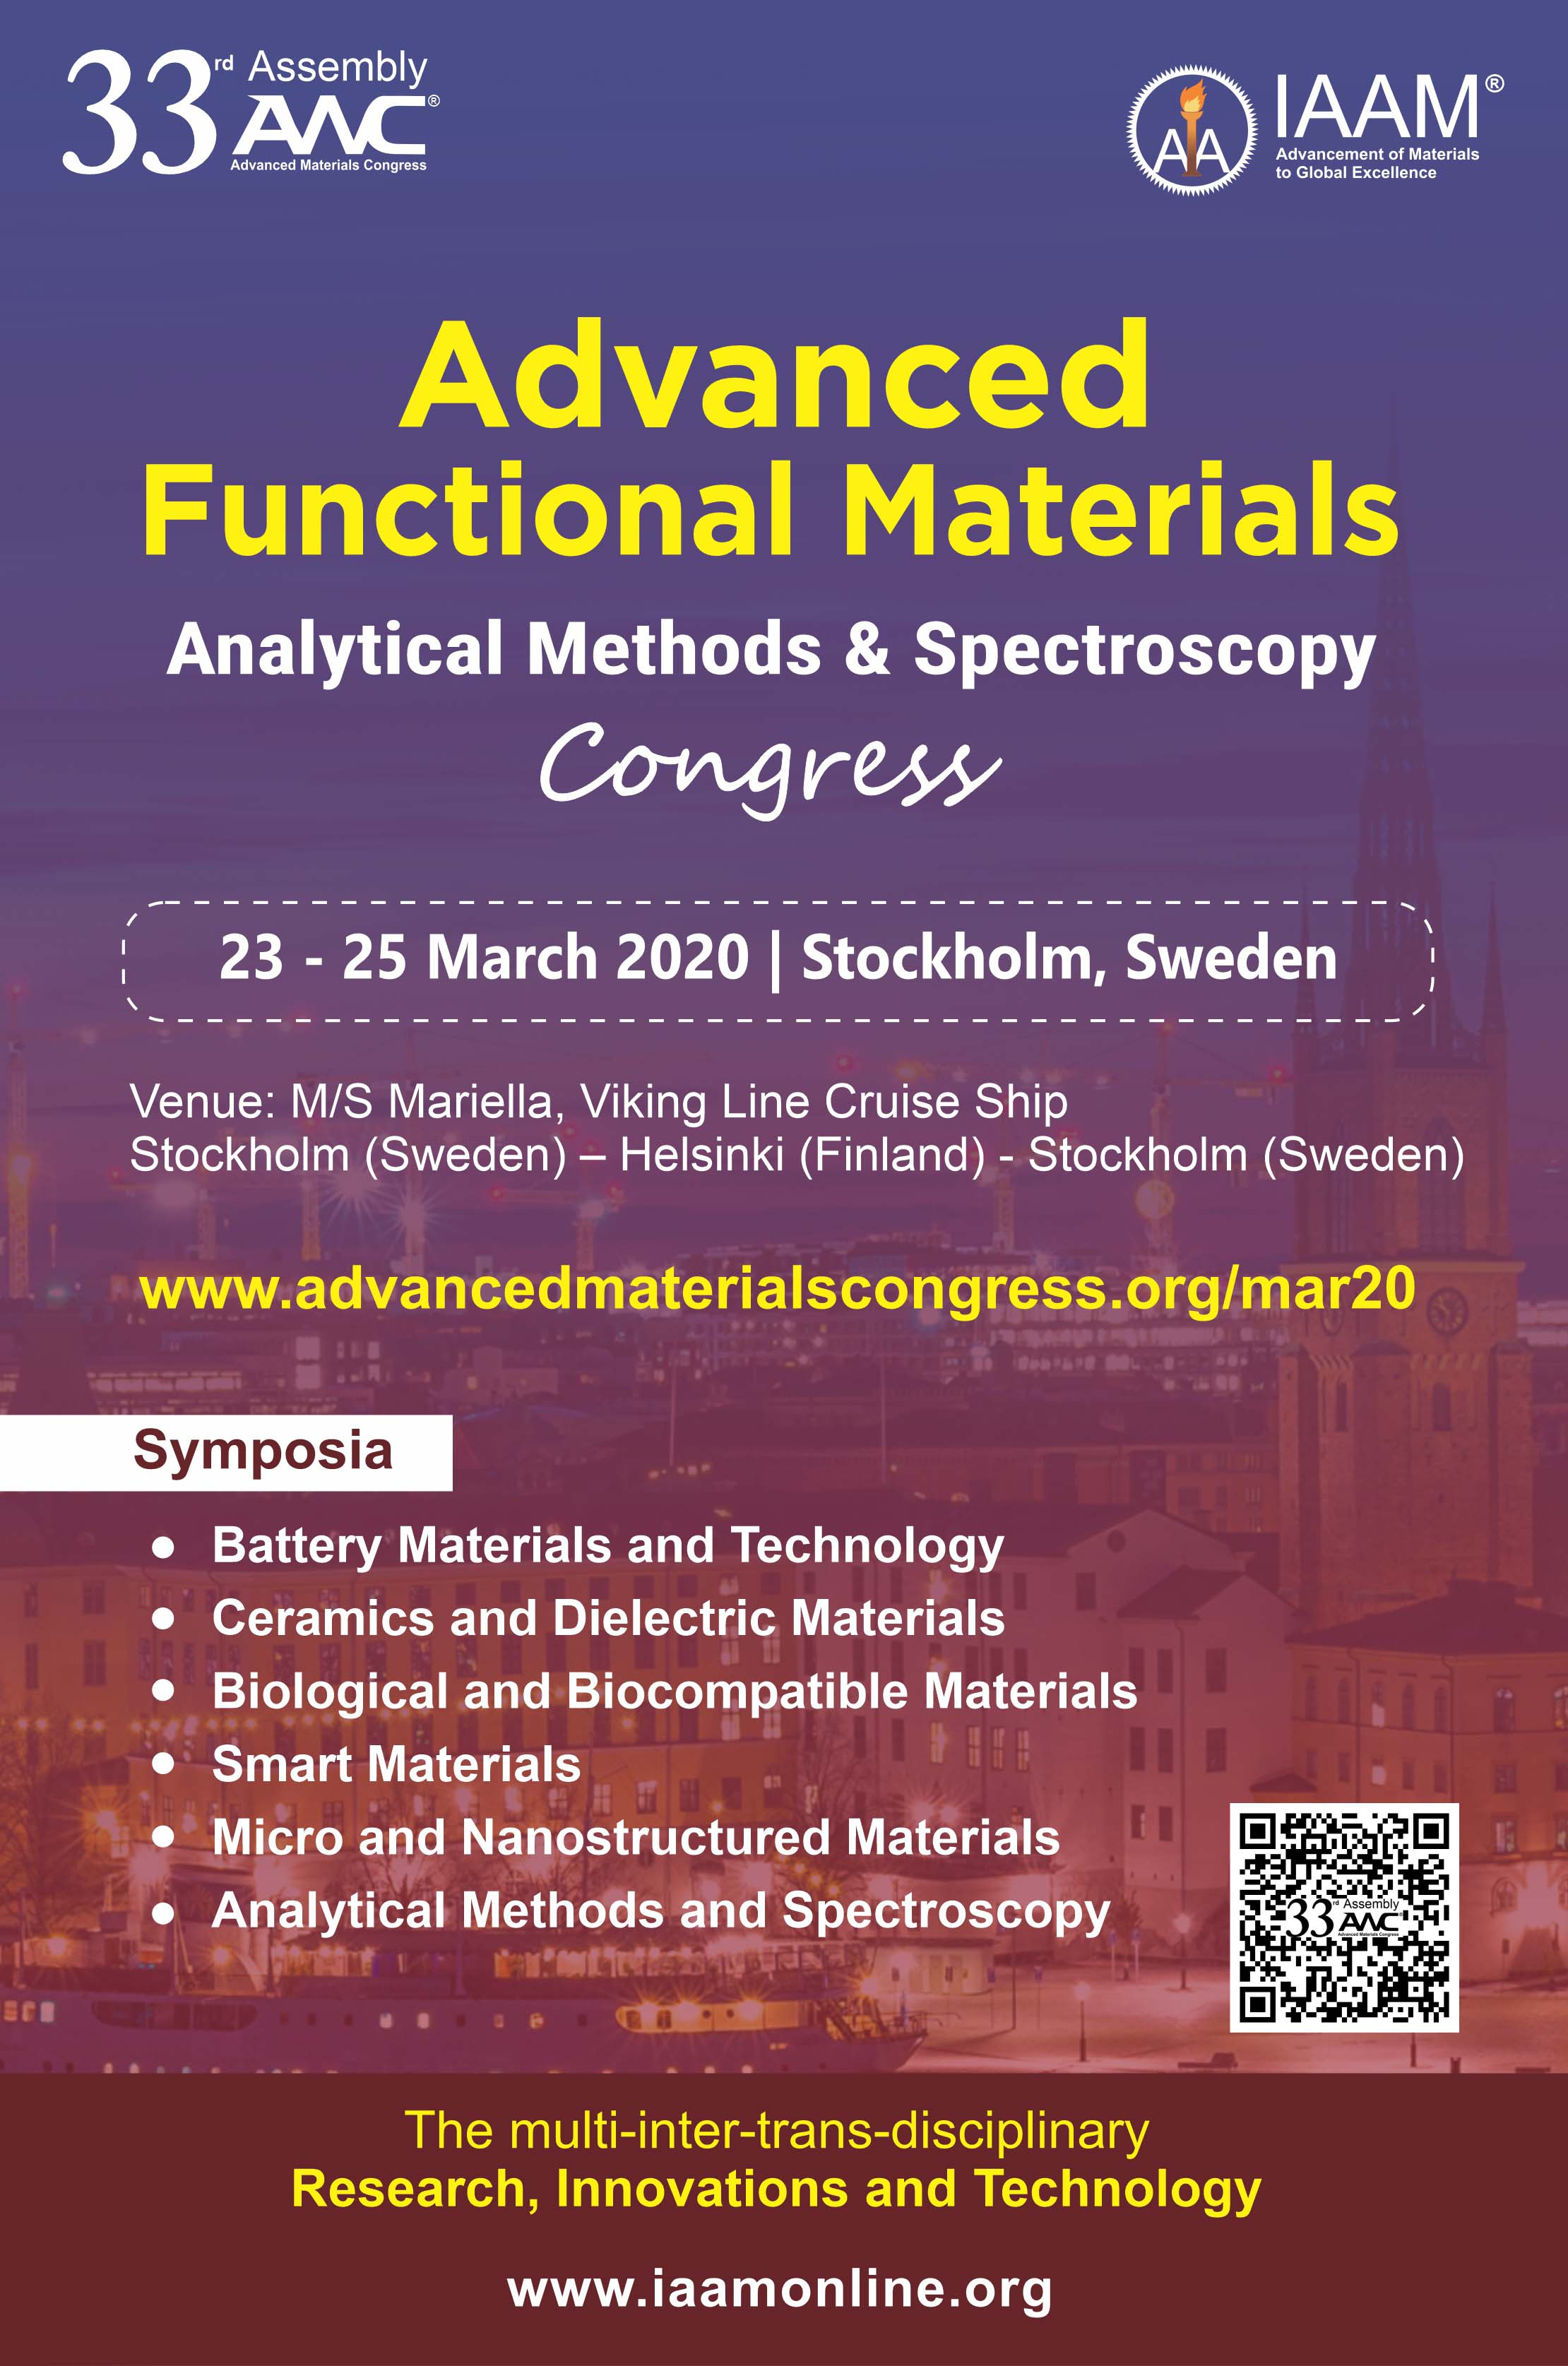 Advanced Functional Materials Congress | March 2020